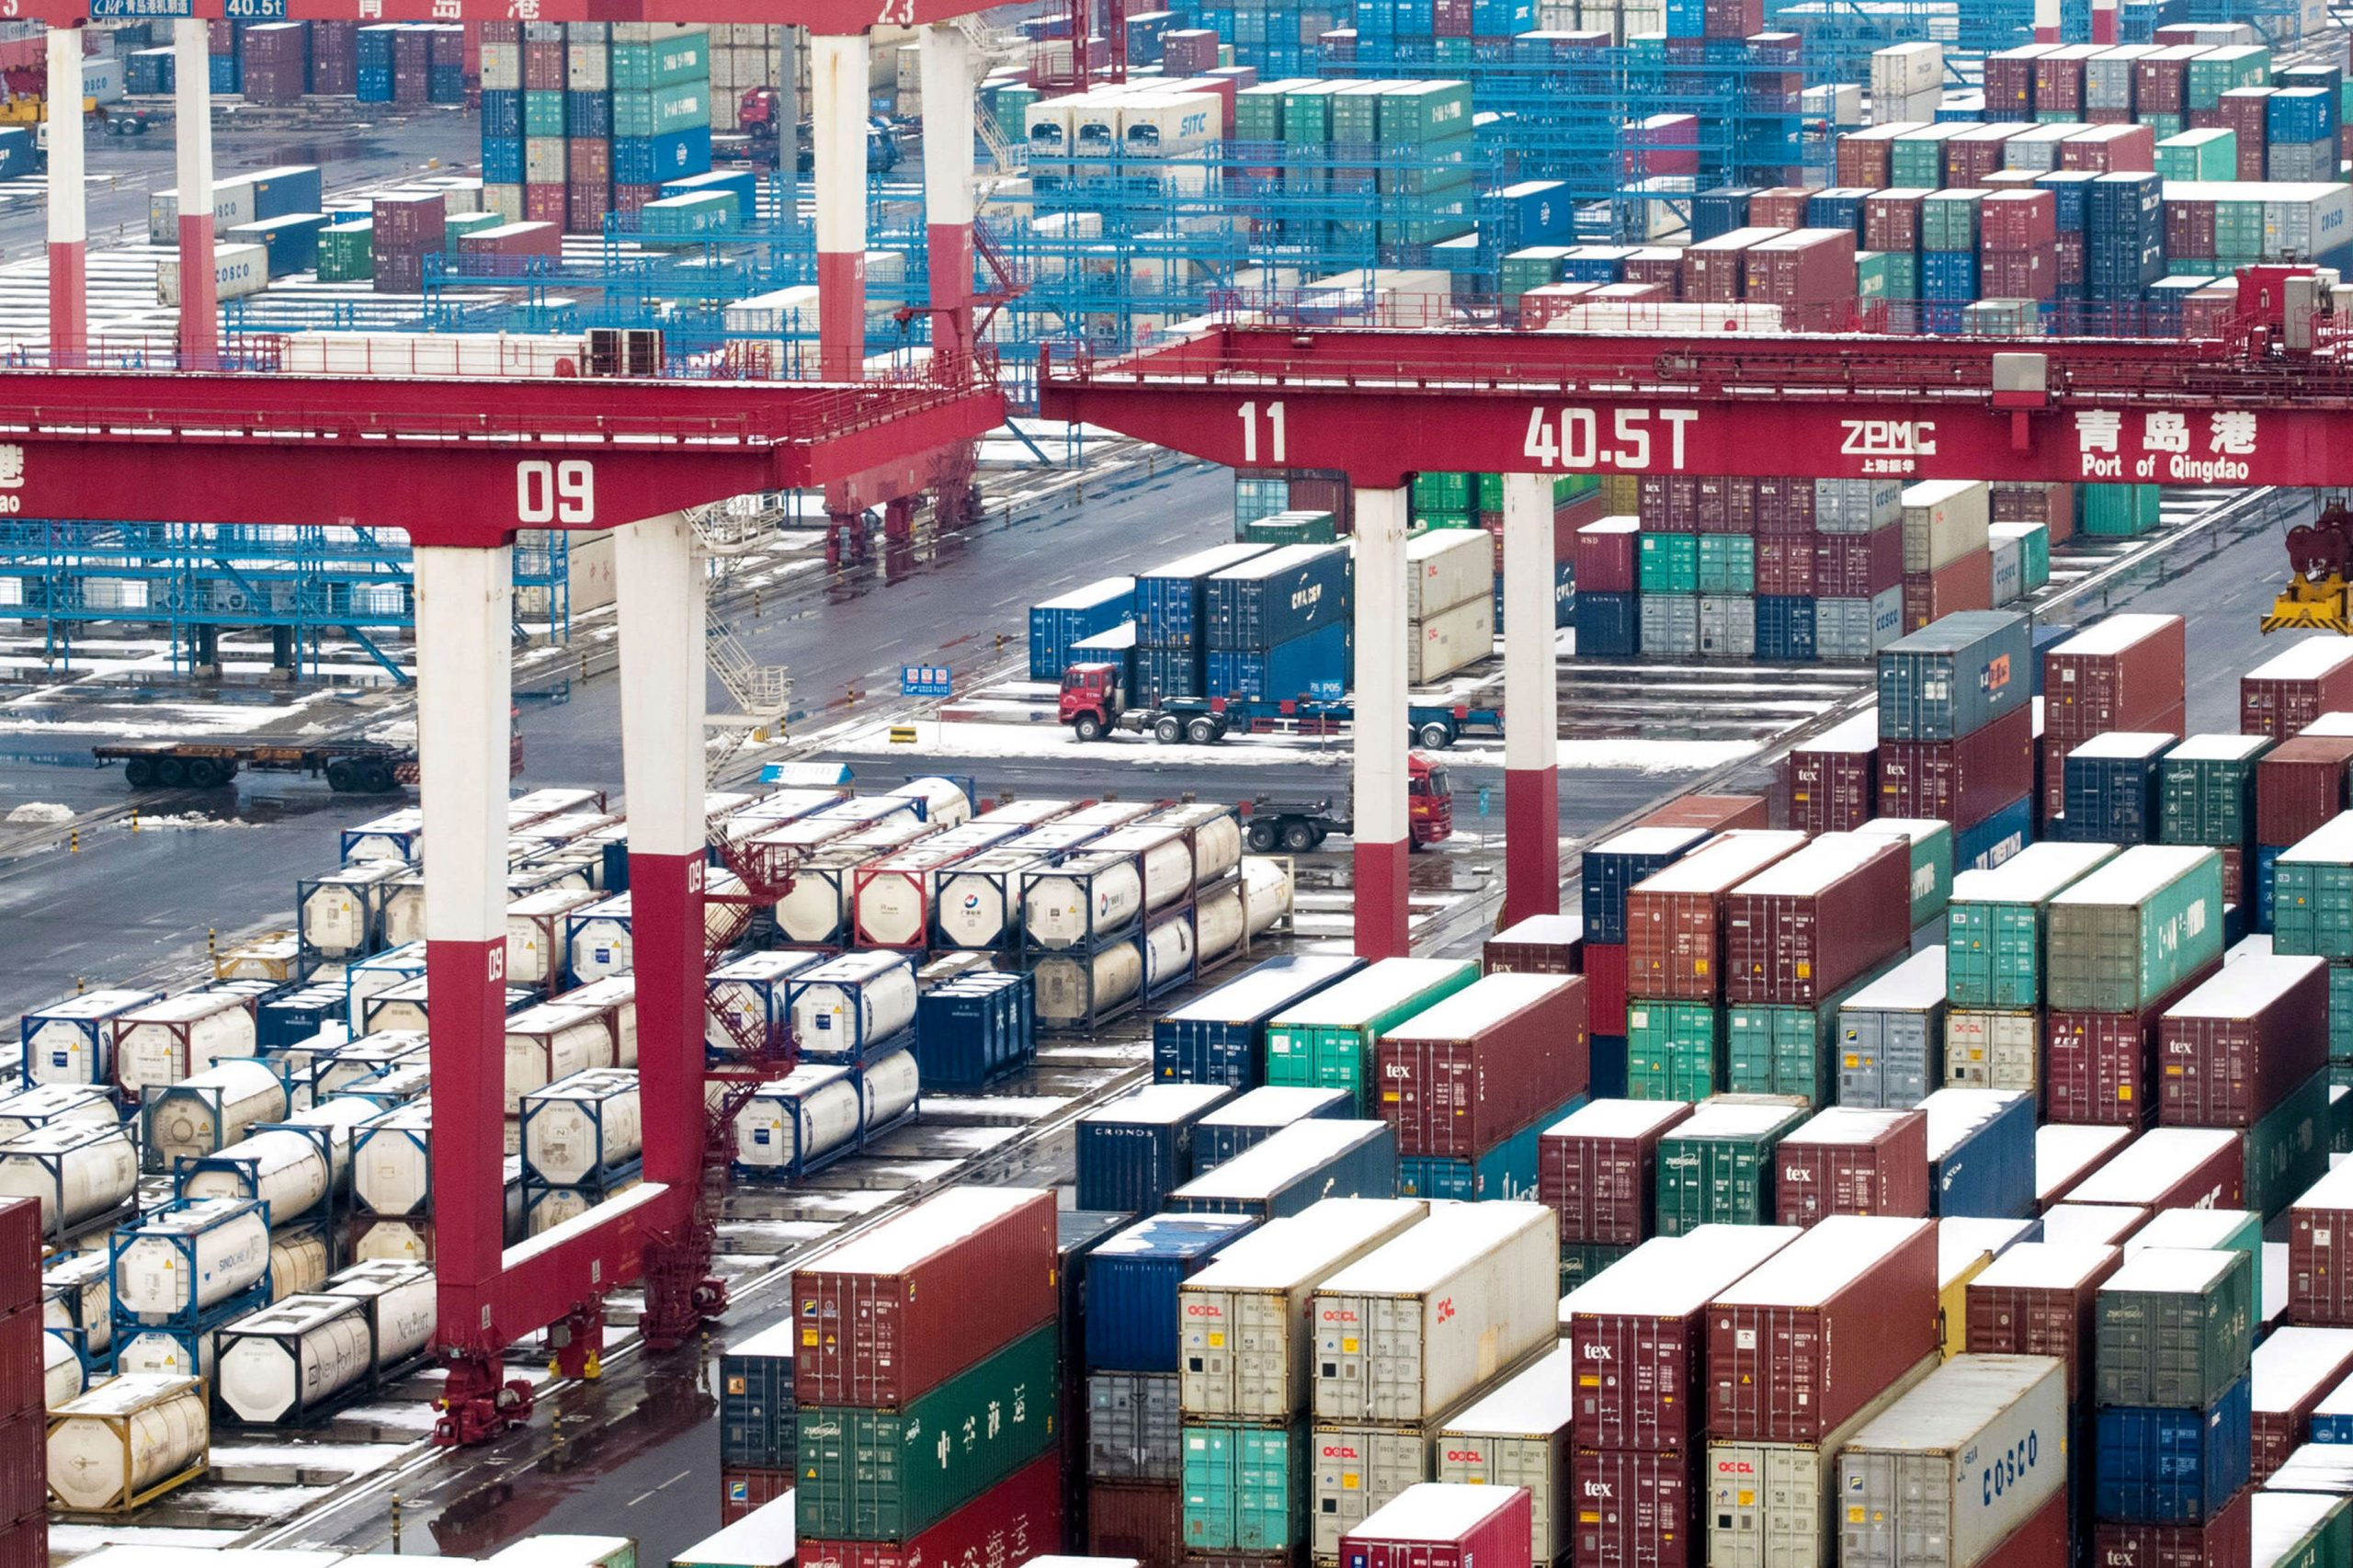 chinas-economy-is-still-months-away-from-a-full-recovery-business-survey-finds